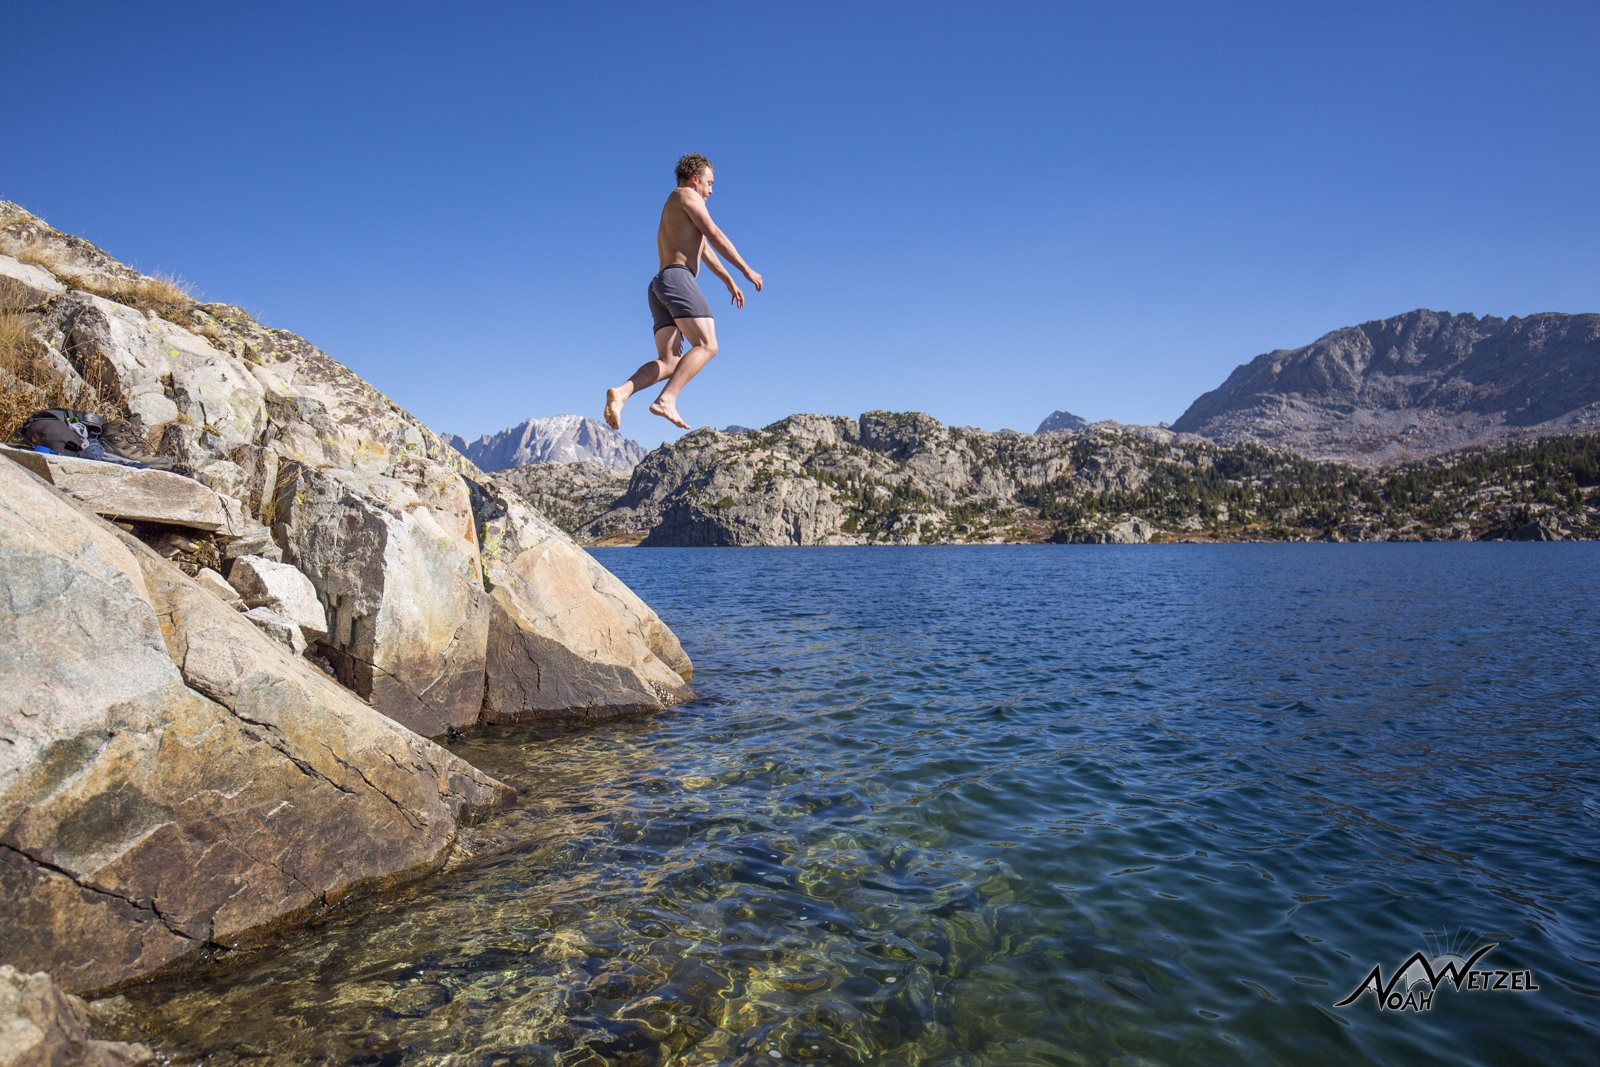 Ben Wetzel jumping into Seneca Lake in late September in the Wind River Range. Wyoming.